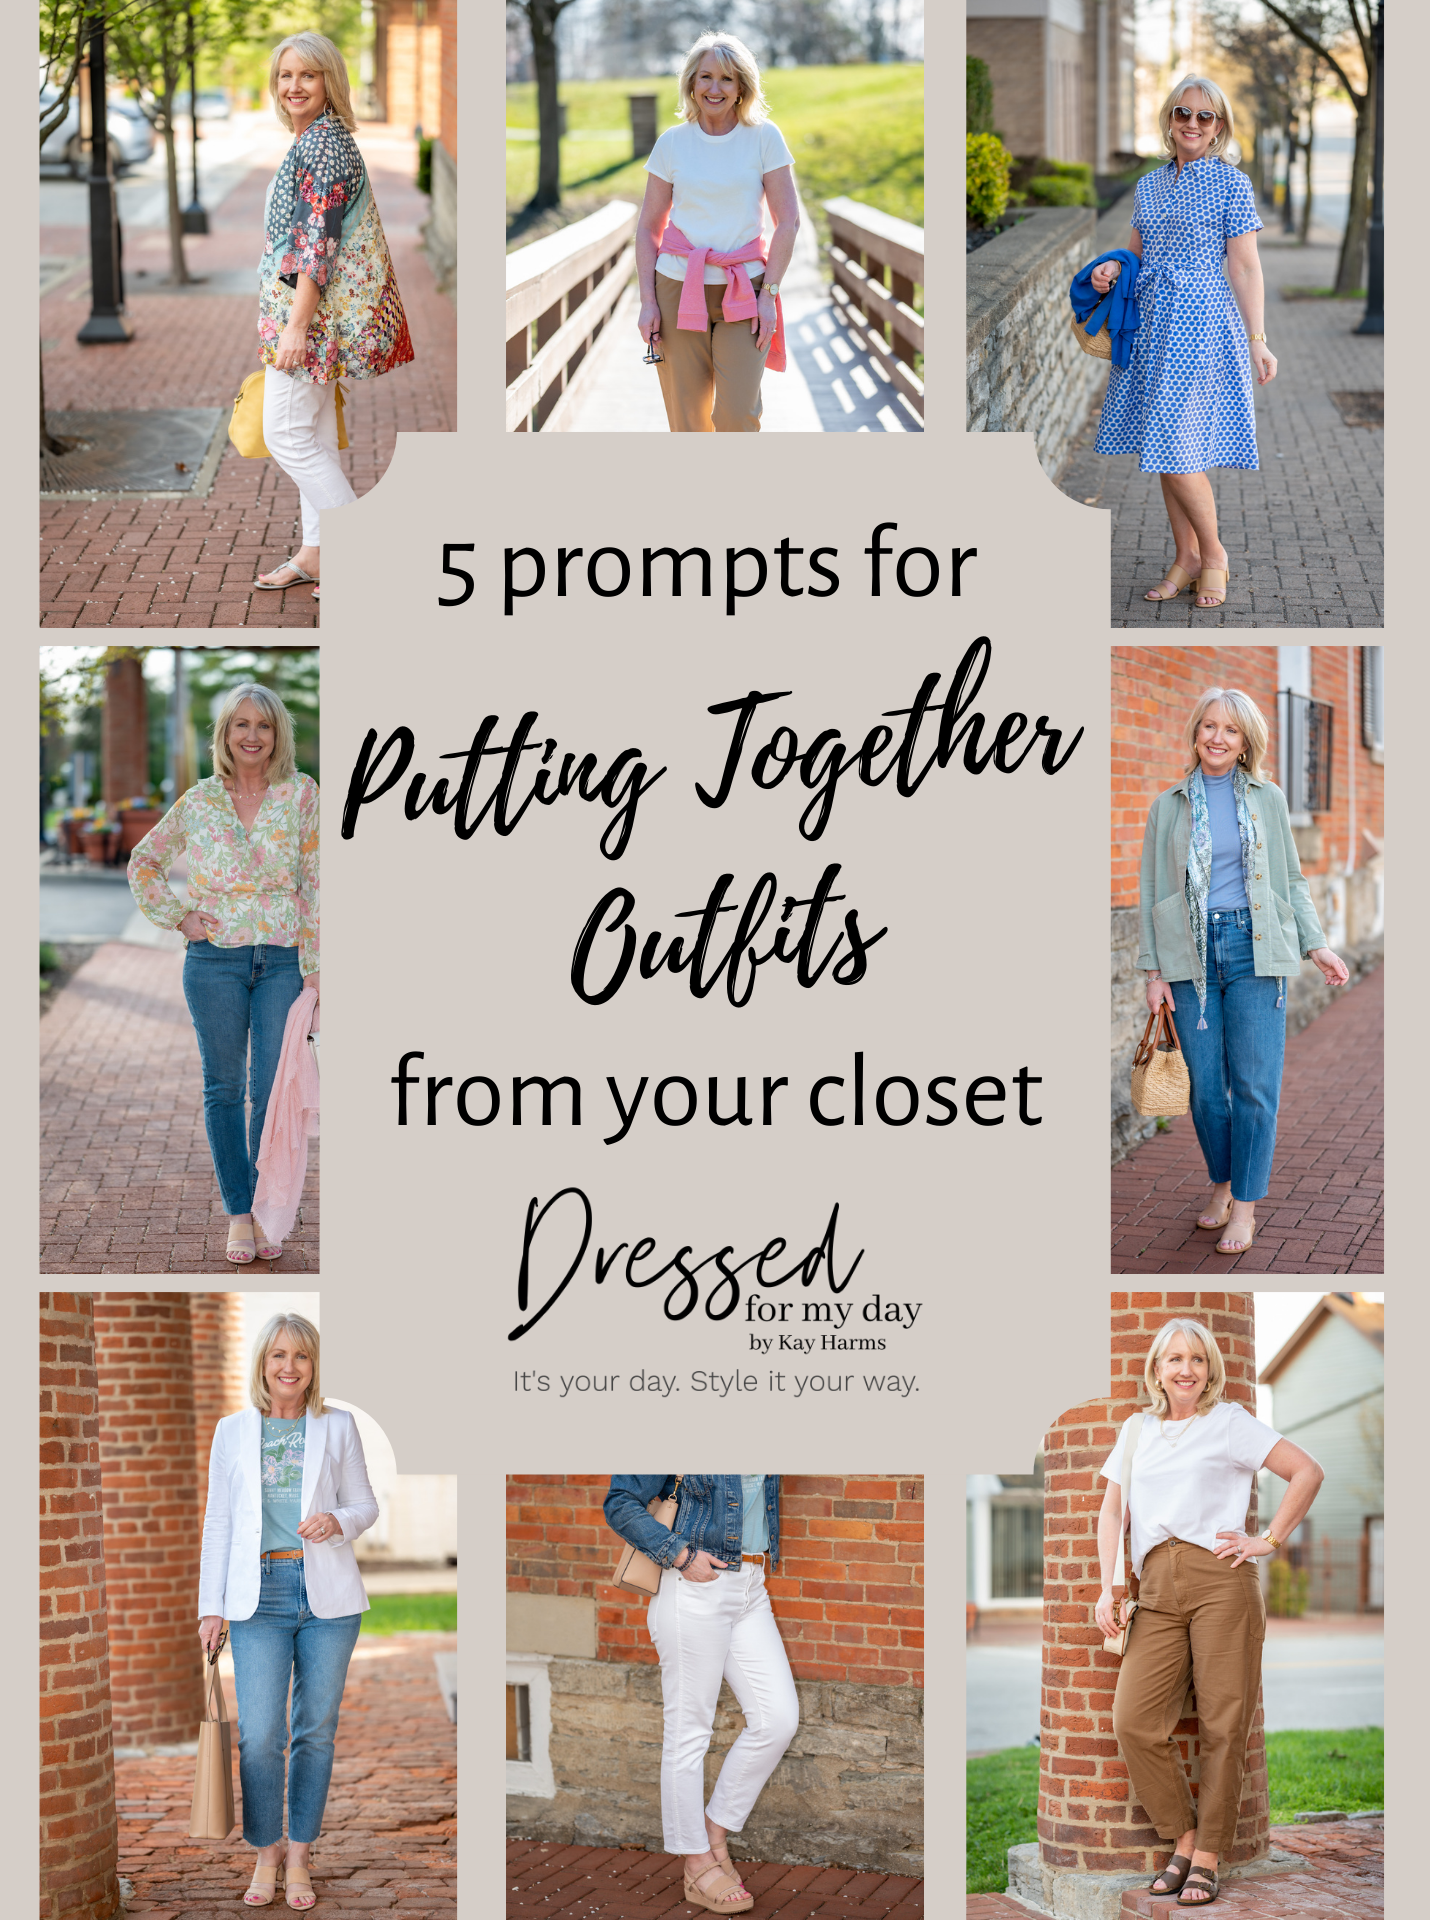 5 prompts for Putting Together Outfits from your closet